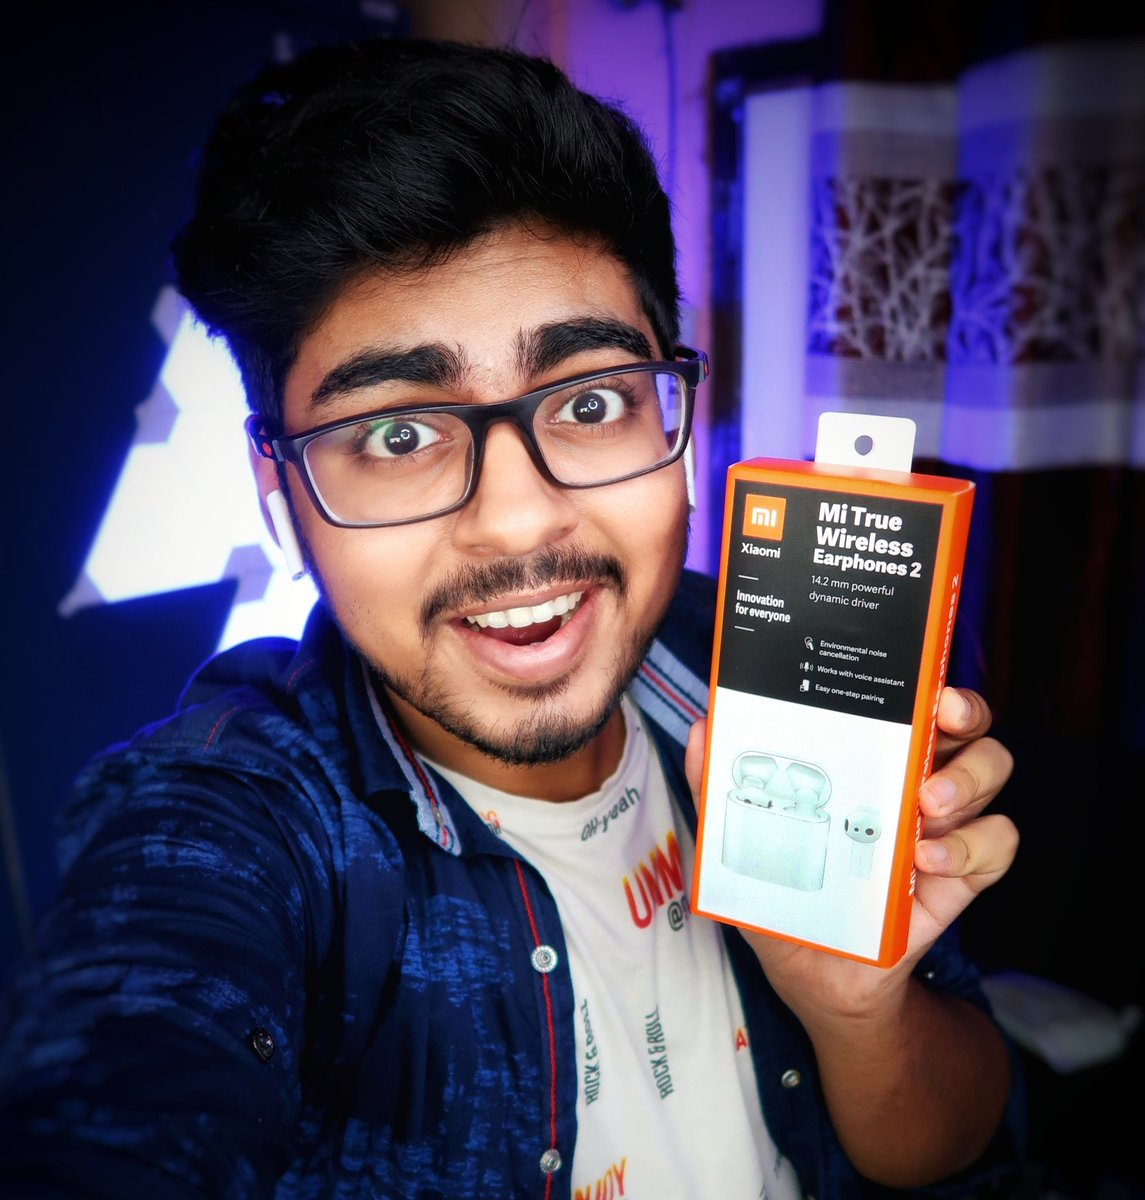 #Giveaway Time!  #Xiaomi mi true wireless Earphones 2  Rules:- 1.#Follow me on @TechnicalSkyin  2.#Like this post 3.#Repost this post  ALL DONE!  WINNER NAME WILL BE ANNOUNCED ON 1st june 2020  on my YouTube Channel's Story!  NOTE: This Giveaway is for INDIAN RESIDENTS ONLY!pic.twitter.com/FEyFV9zIOh